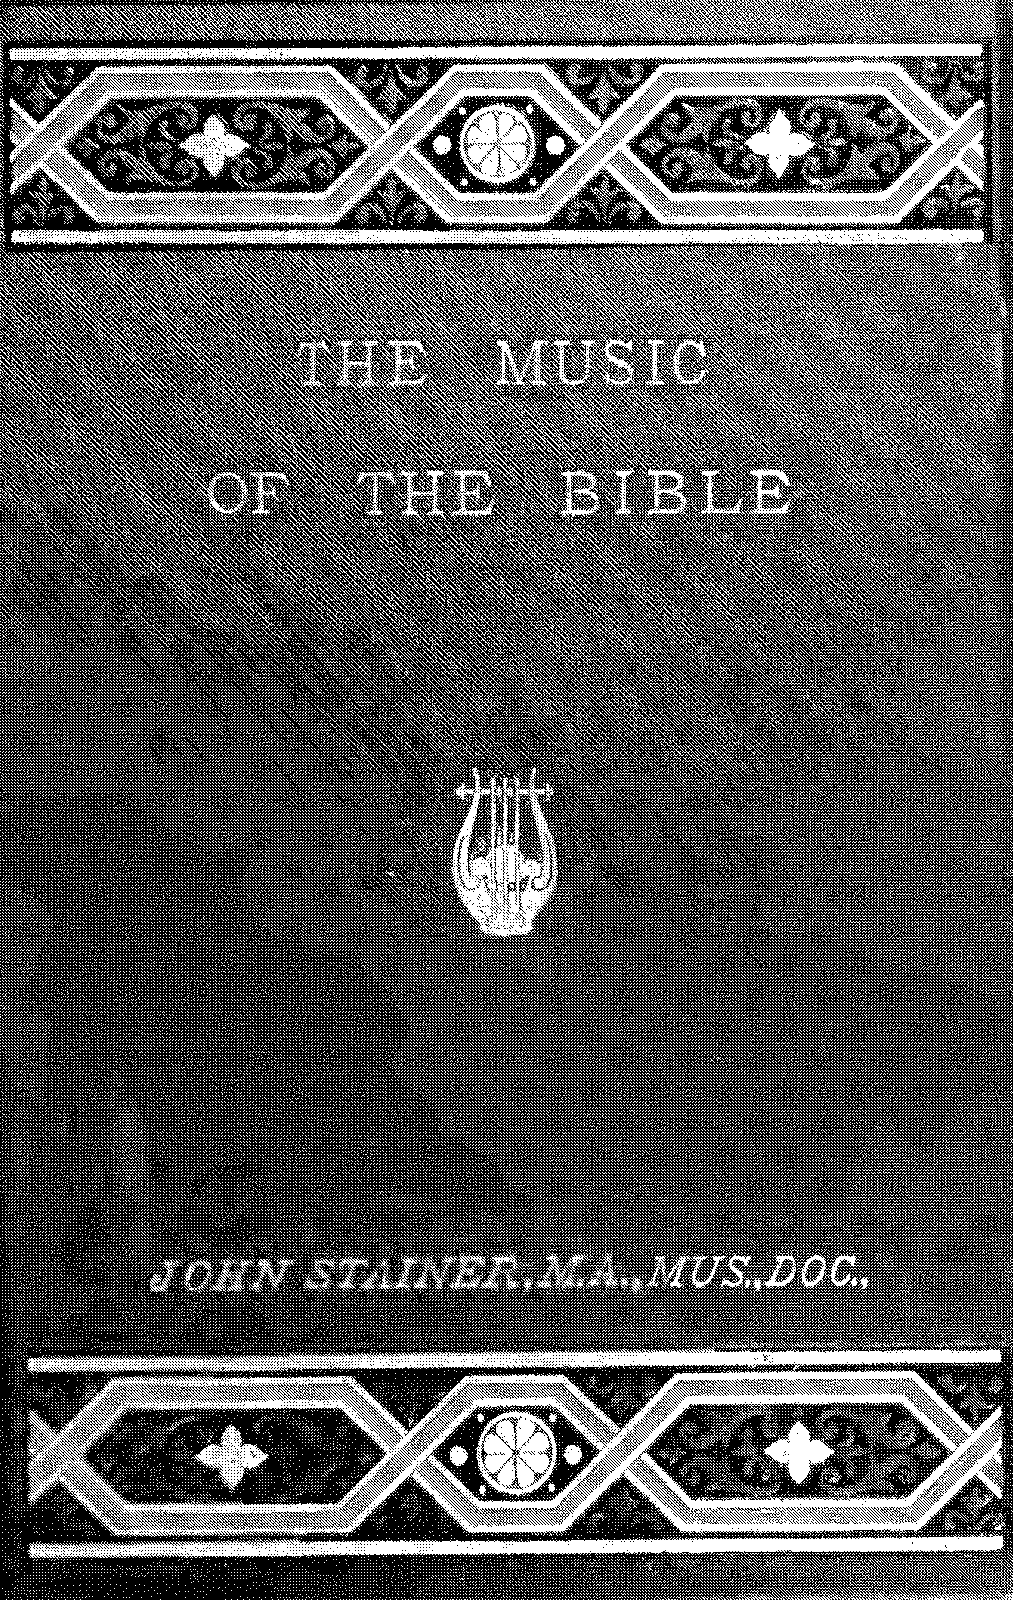 PMLP347215-cu31924022269058 stainer music of the bible.pdf